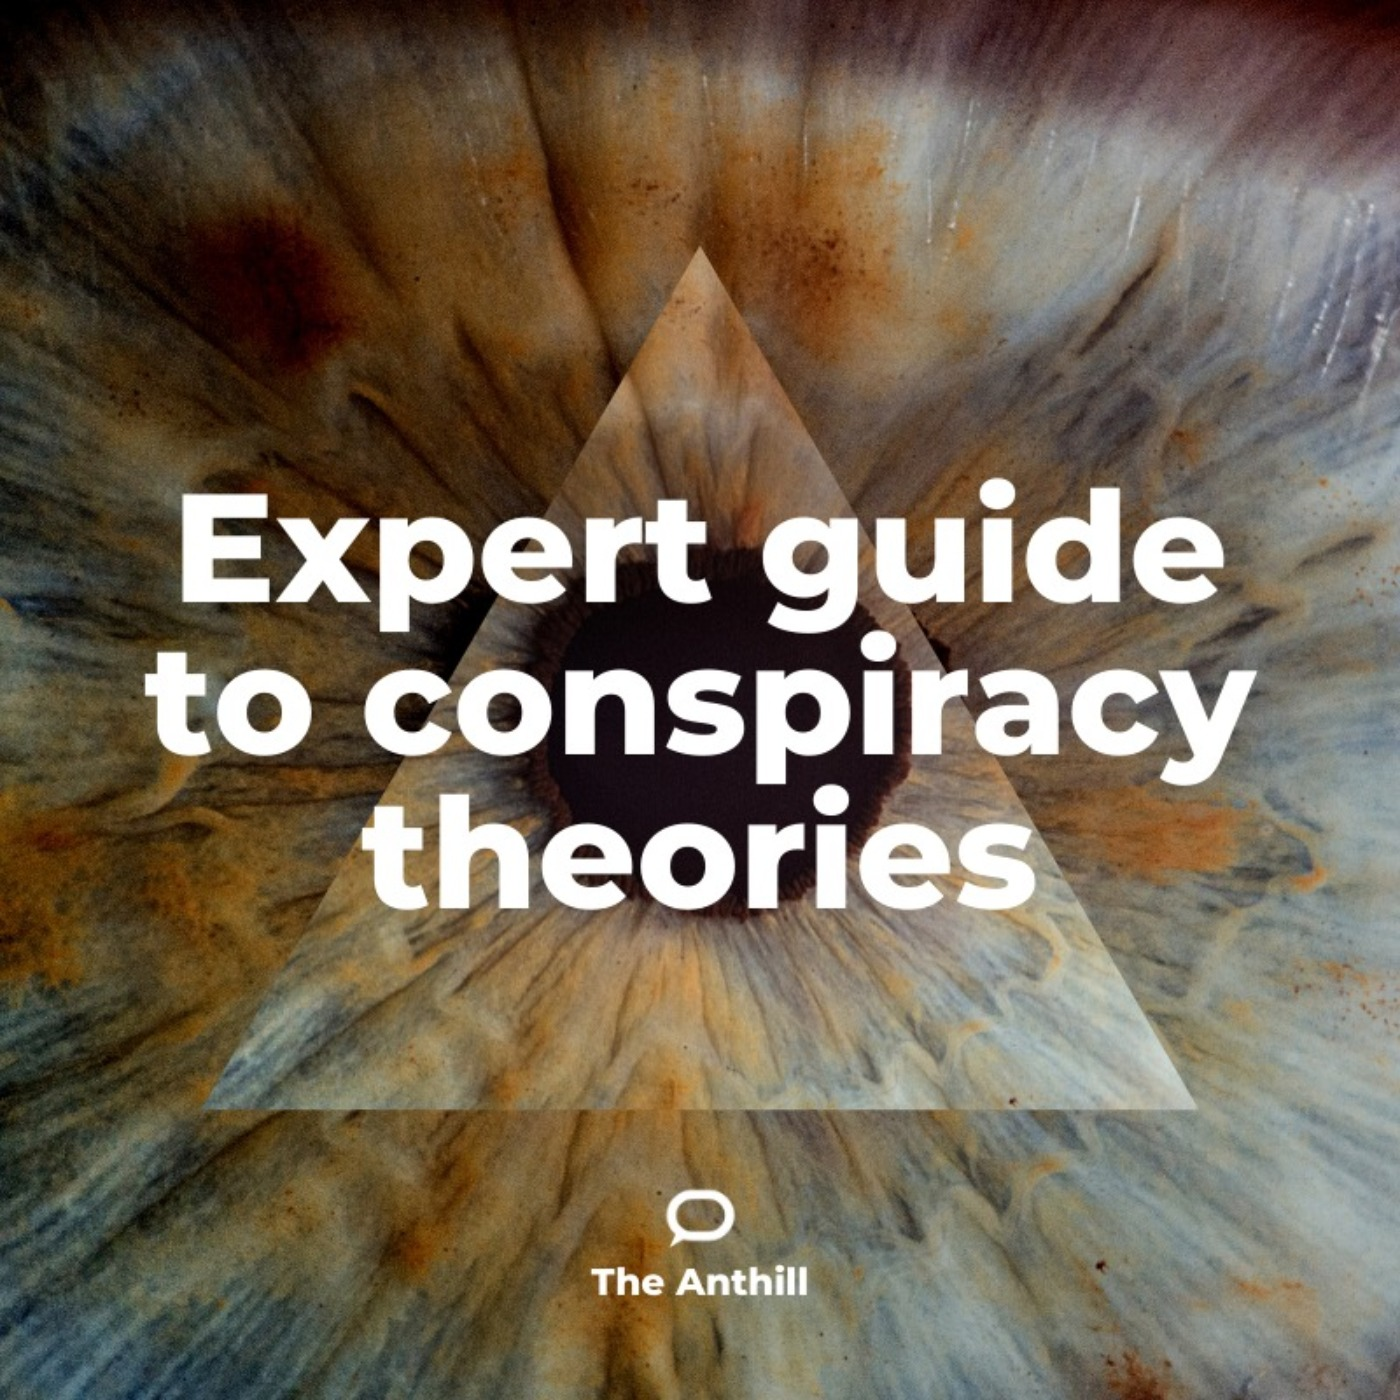 Expert guide to conspiracy theories part 5 –how dangerous are they?